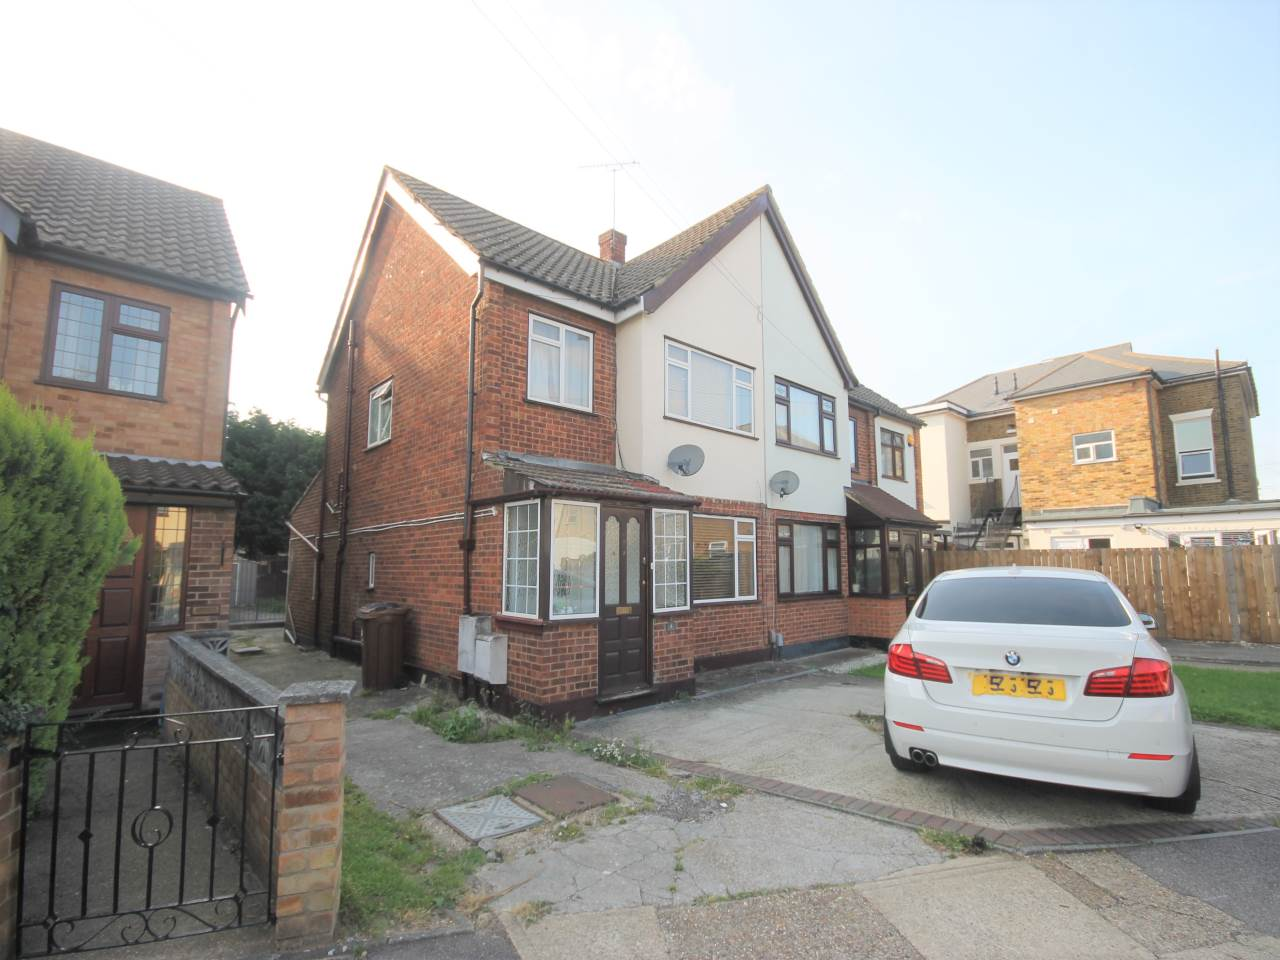 3 bed house to rent in Chadwell Heath - Property Image 1